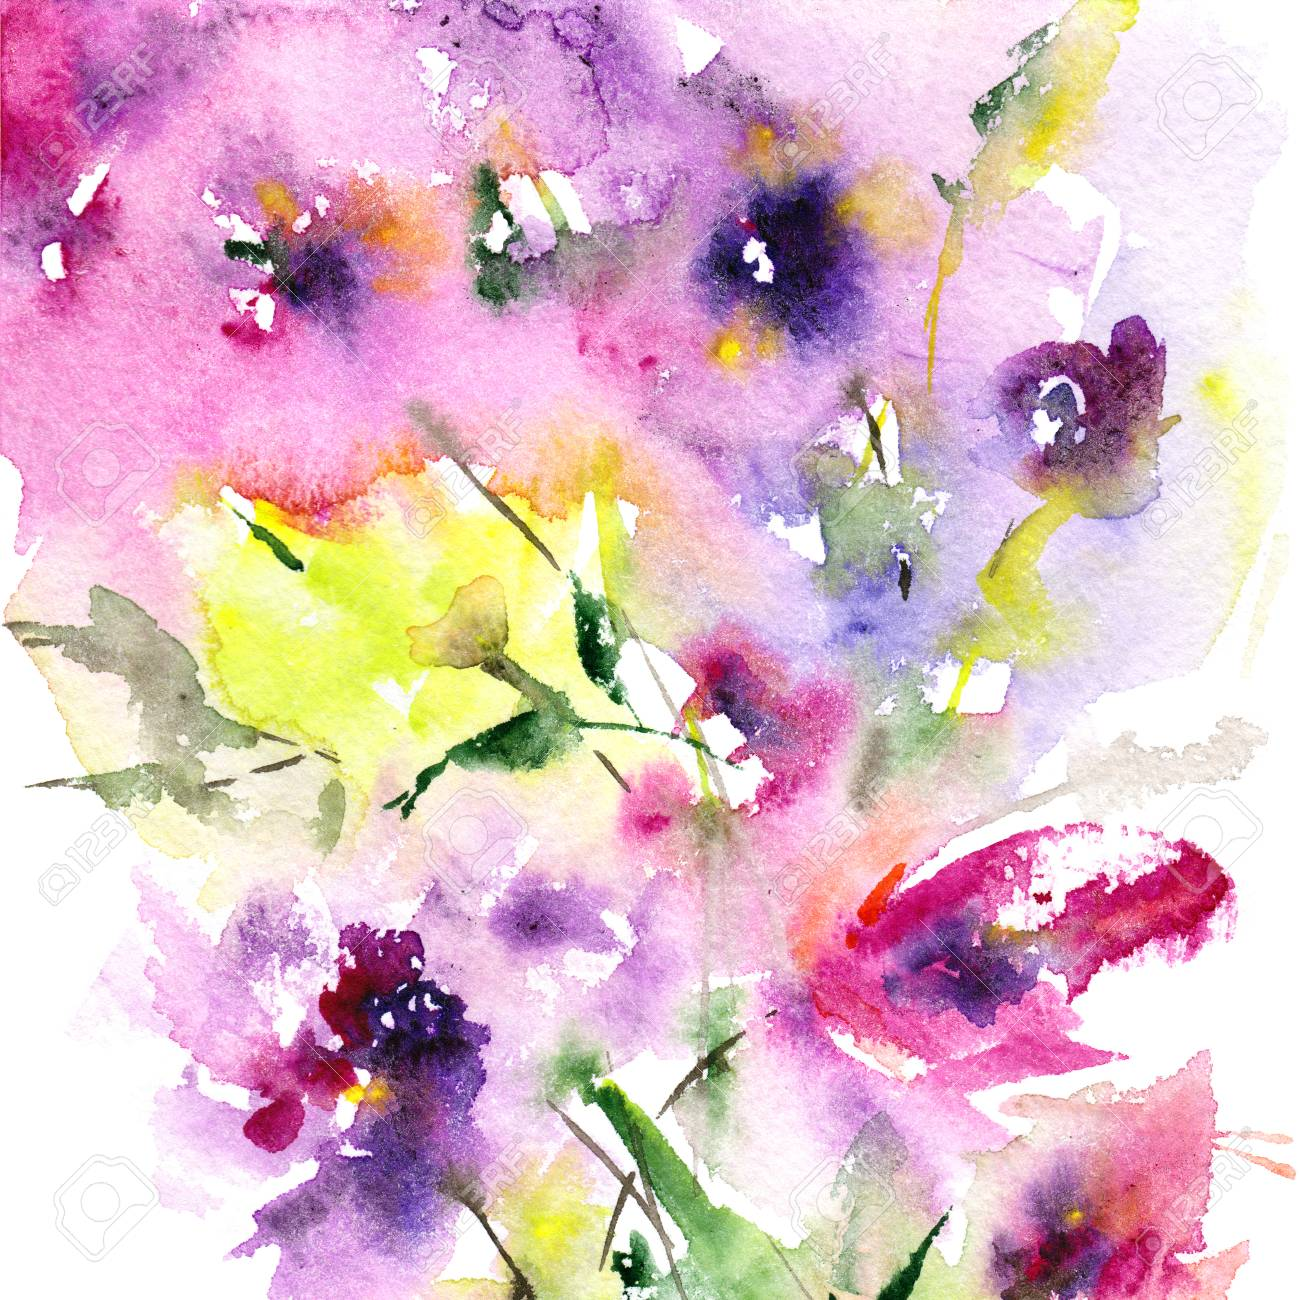 Floral background watercolor floral background greeting card floral background watercolor floral background greeting card wedding invitation template floral card mightylinksfo